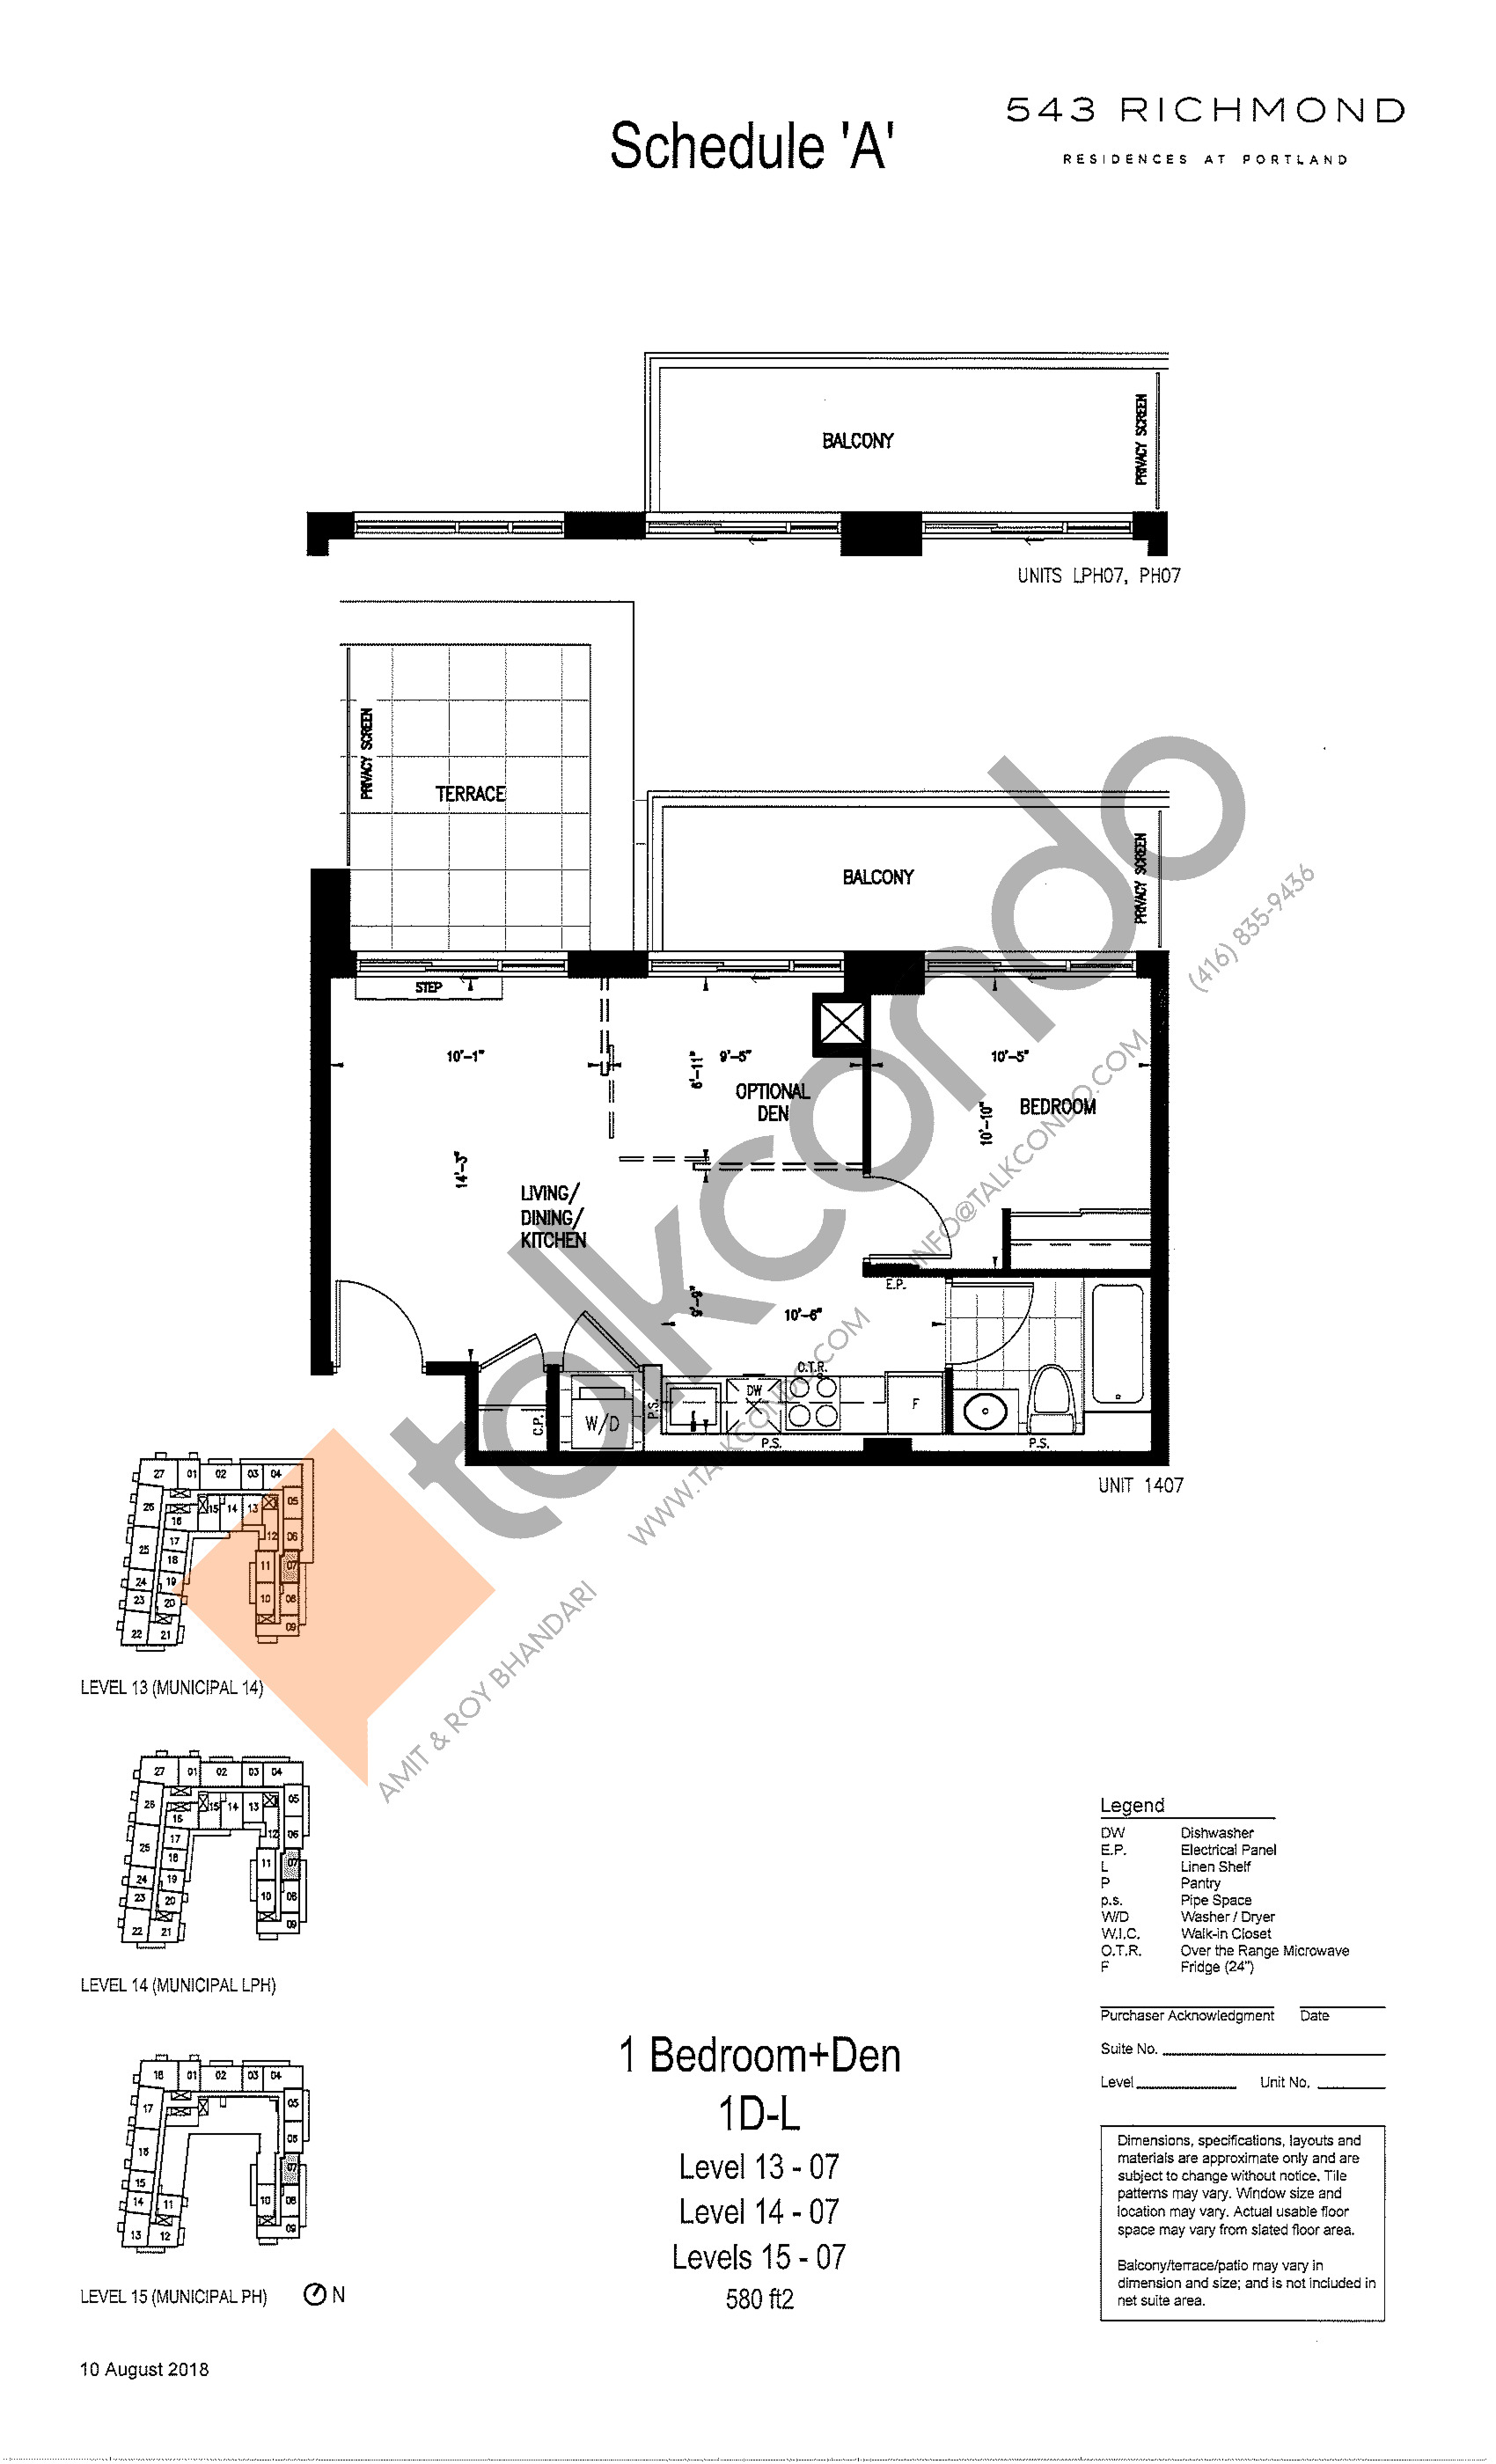 1D-L Floor Plan at 543 Richmond St Condos - 580 sq.ft